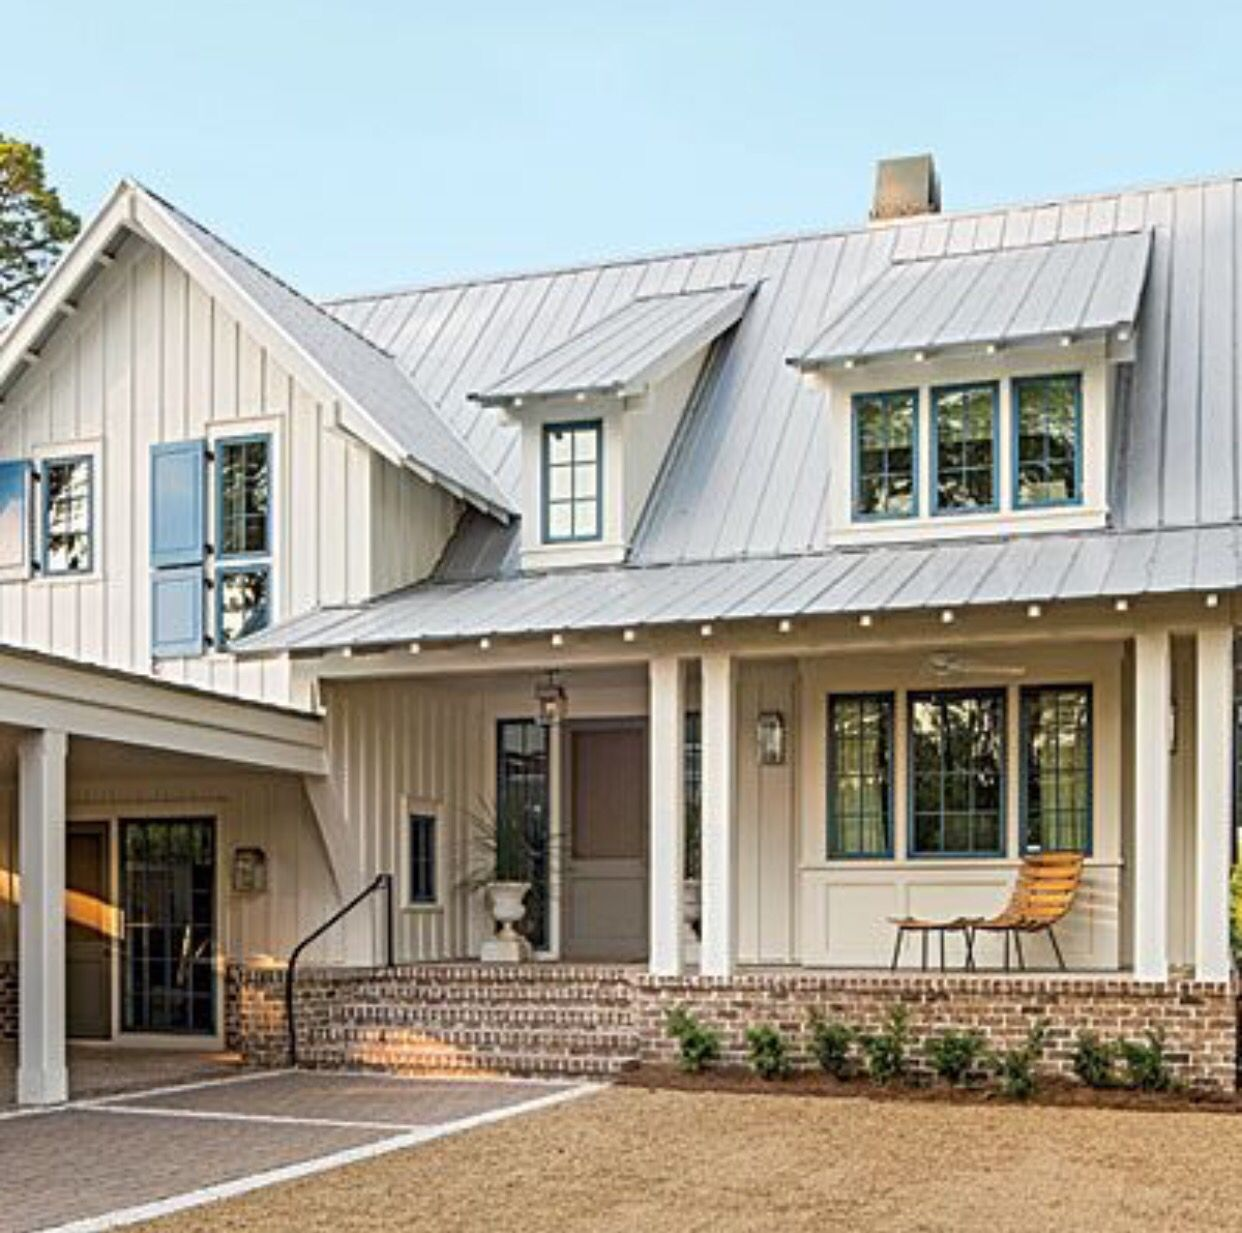 Shed dormer board and batten porch farmhouse industrial